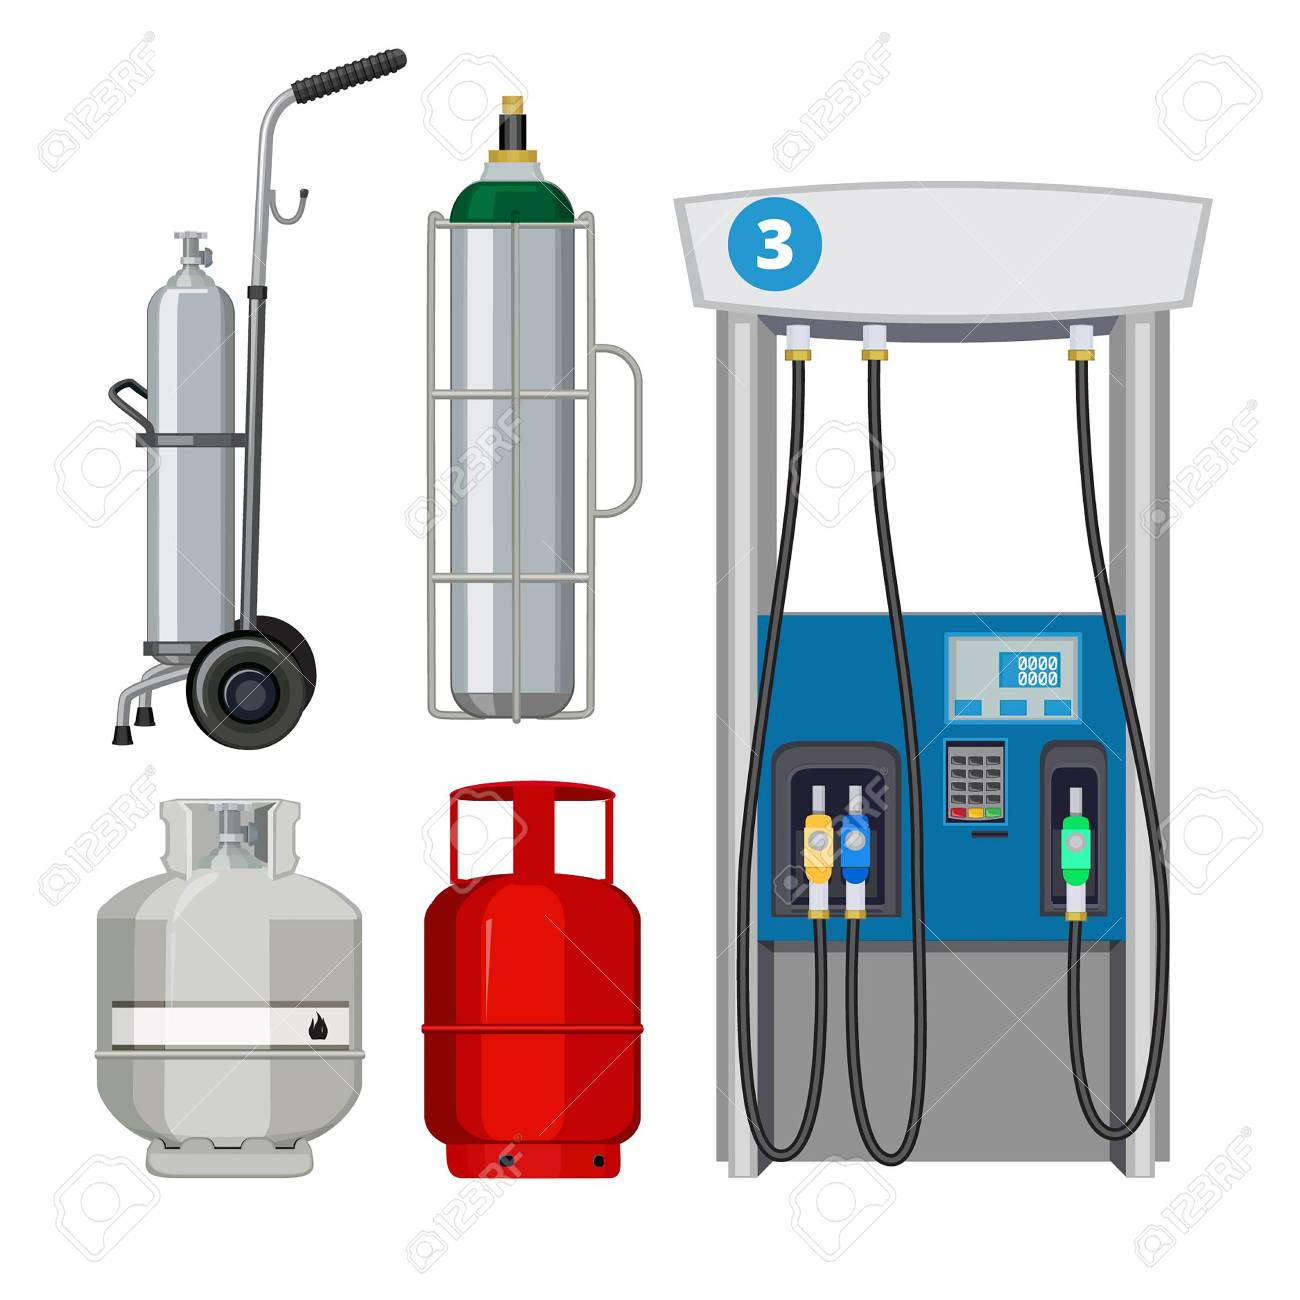 Gas station. Pumping petrol types metal tank cylinders vector illustrations of petrol pumps. Gas pump, petrol station, industry petroleum and gas fuel balloon - 109646788